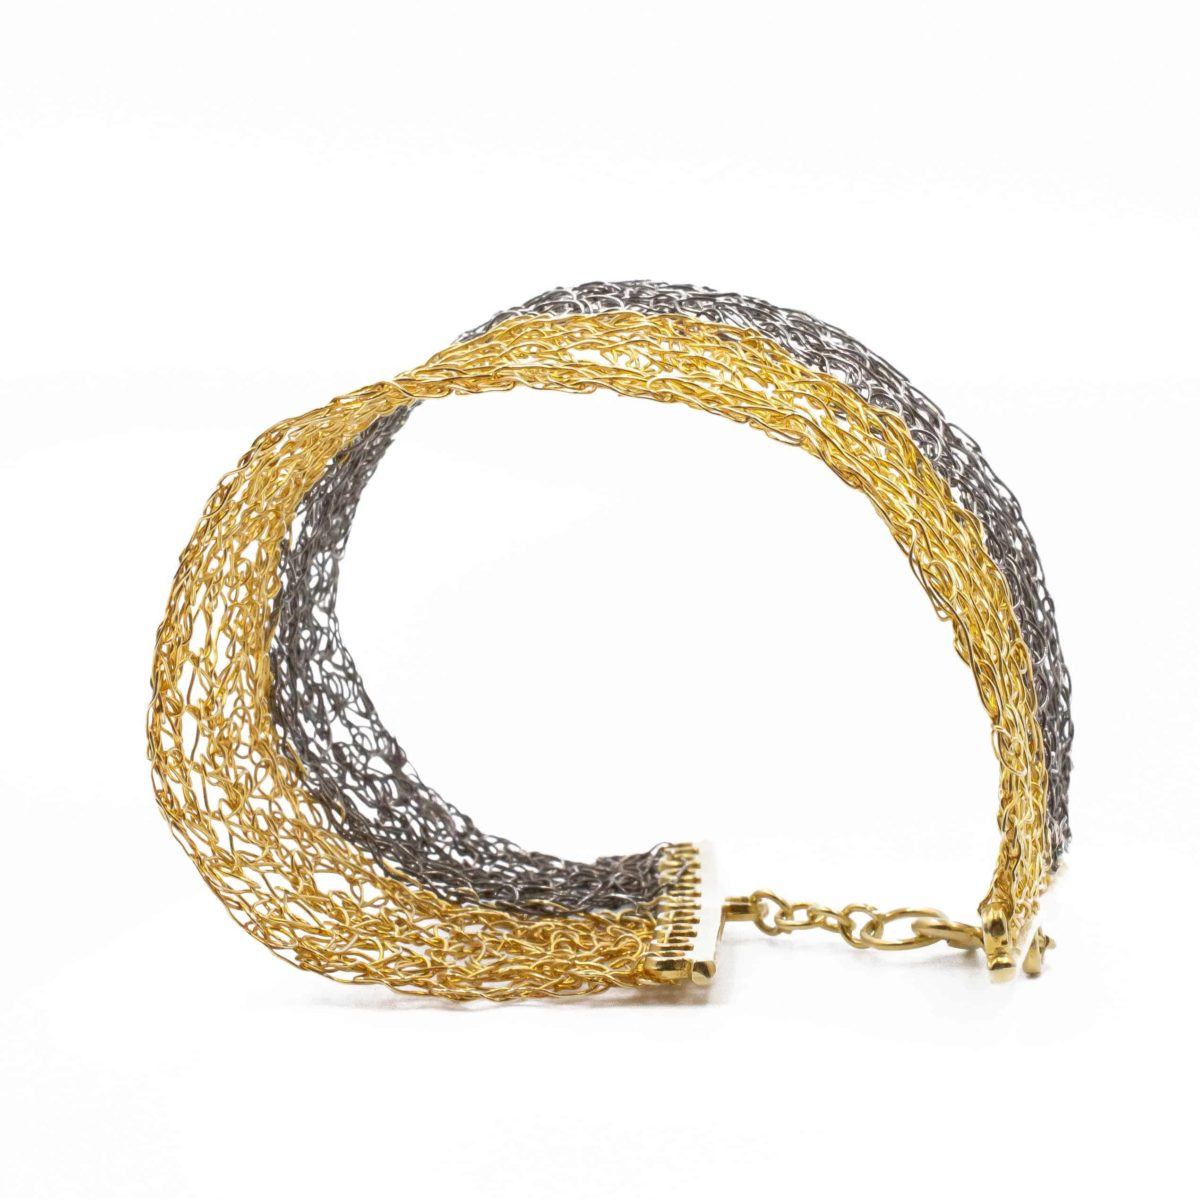 top view of gold and black rhodium cuff bracelet for women